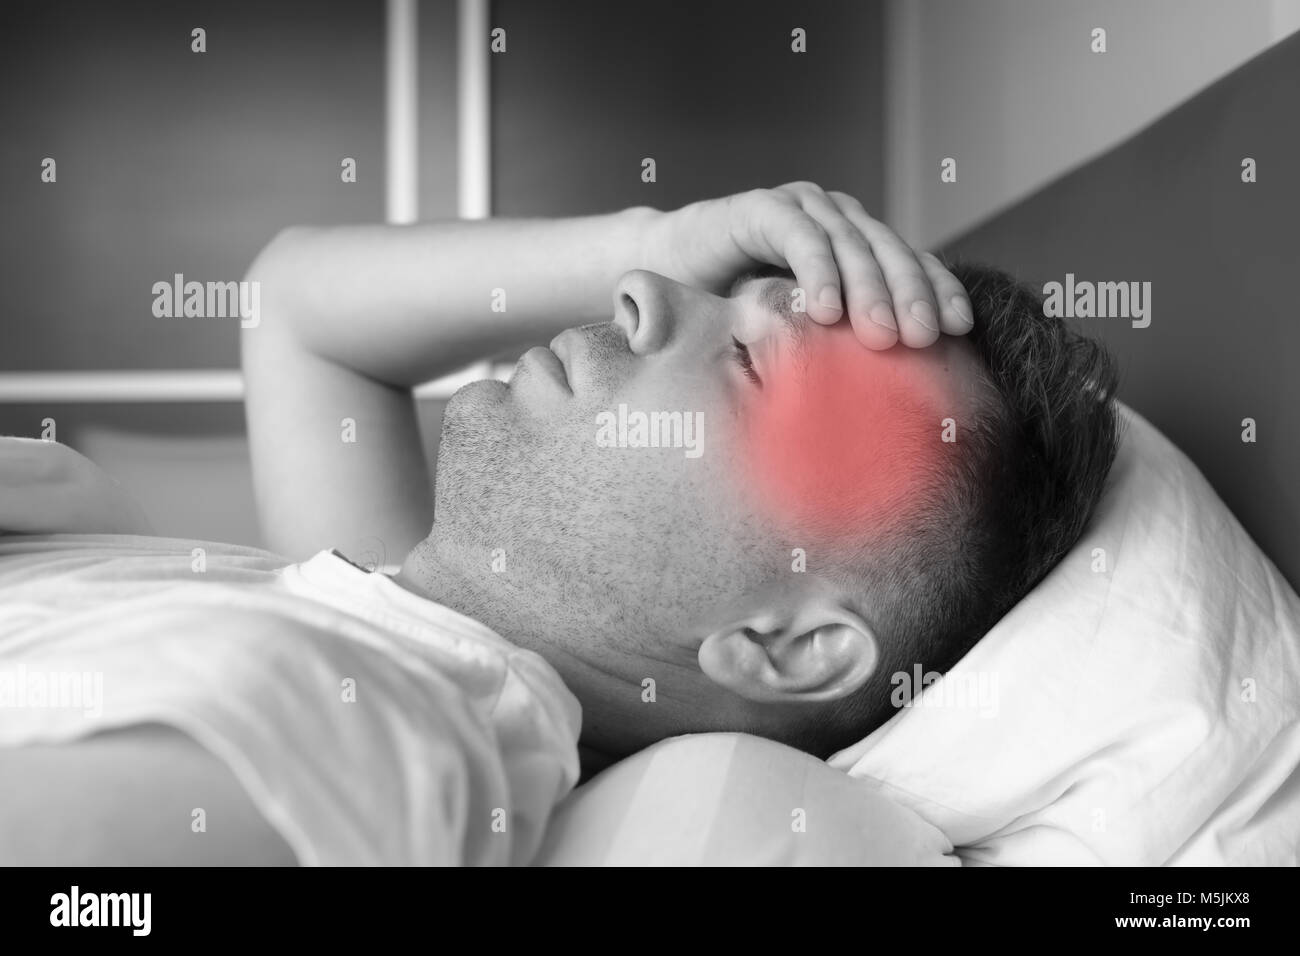 man lying in bed at home suffering from headache or hangover Stock Photo